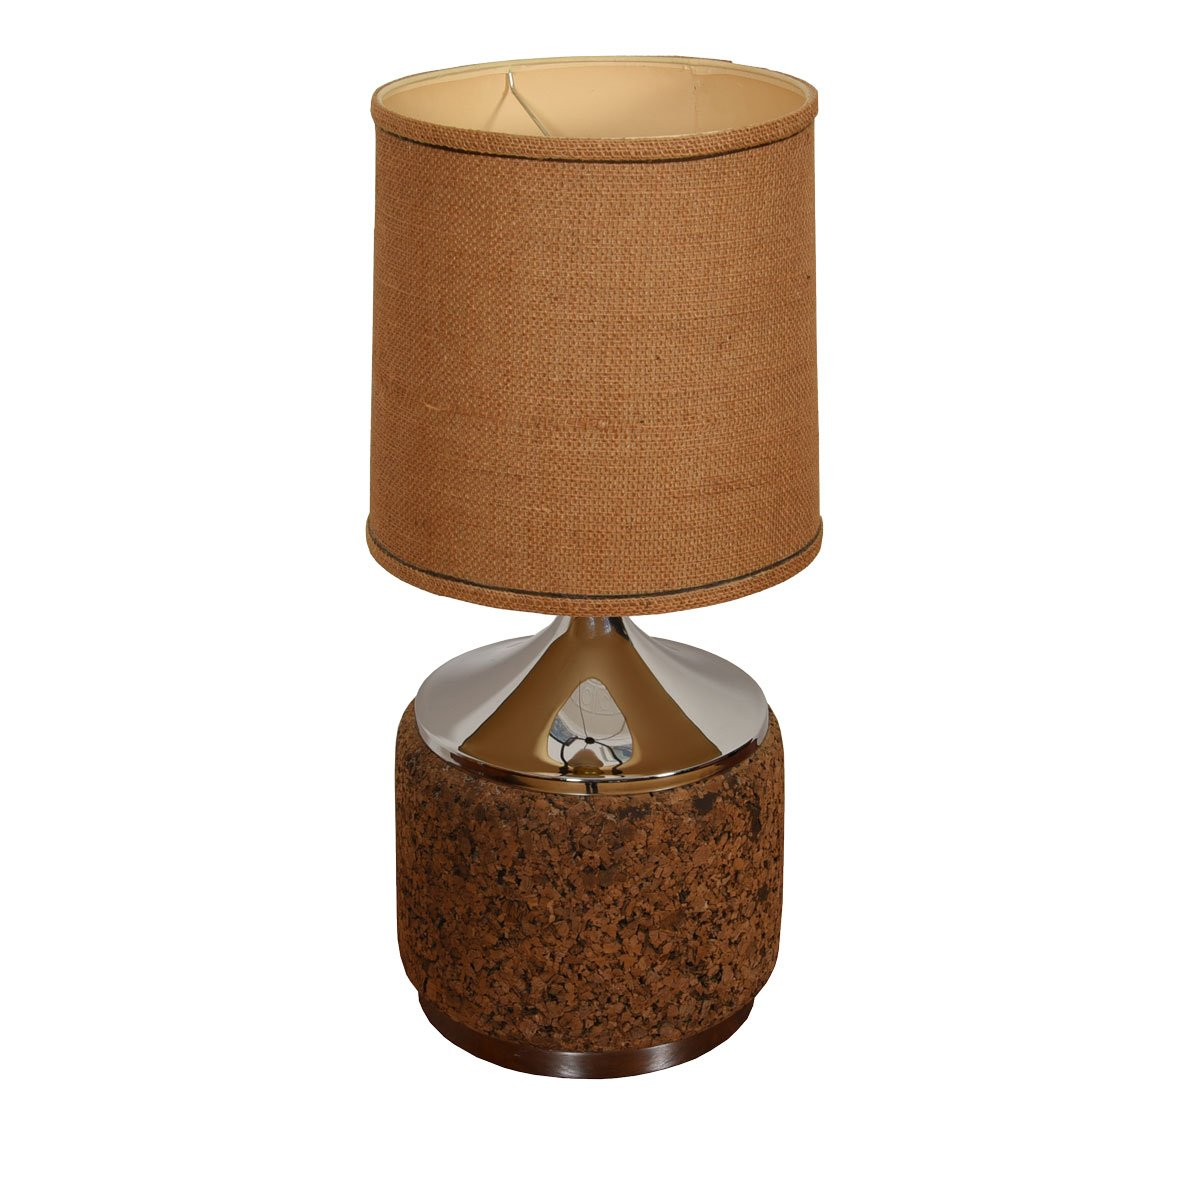 Pair of Cork and Chrome Lamps